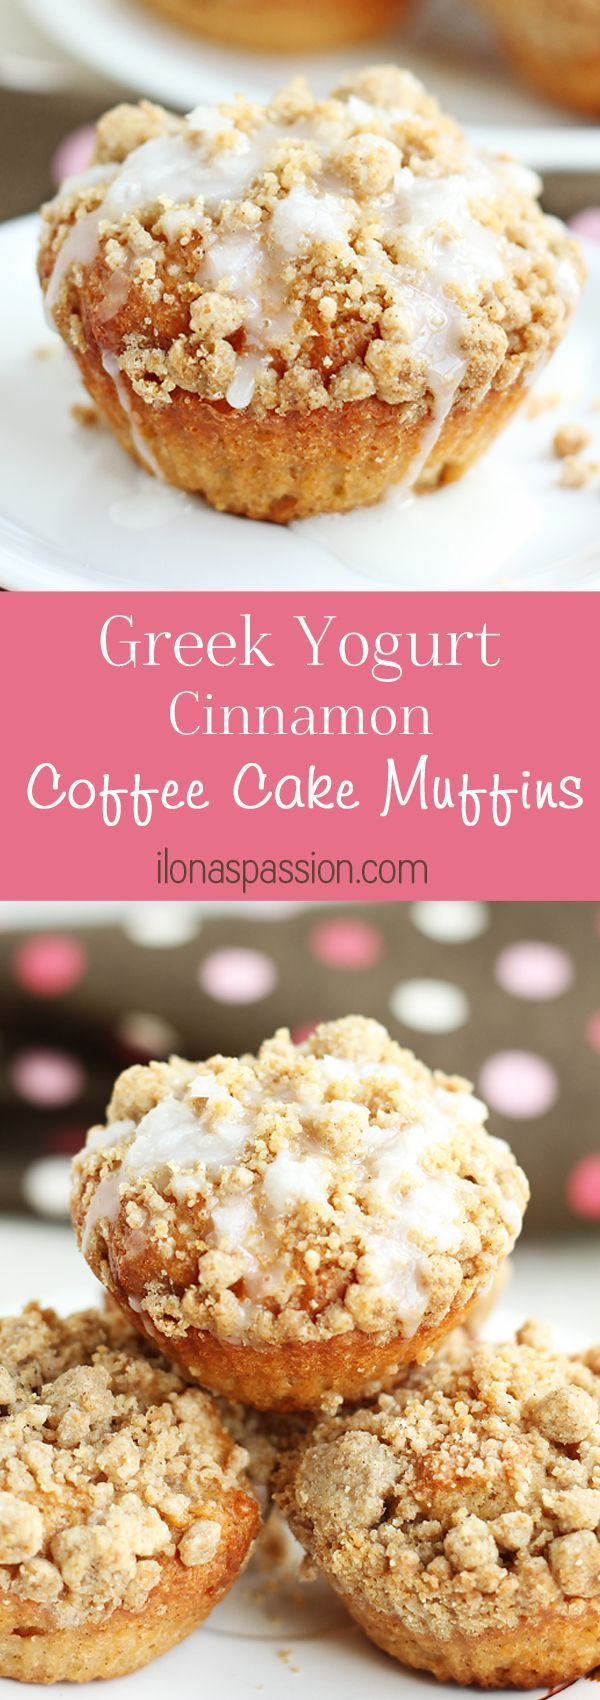 Greek Yogurt Cinnamon Coffee Cake Muffins – Healthier coffee cake muffins recipe… – Cake recipes